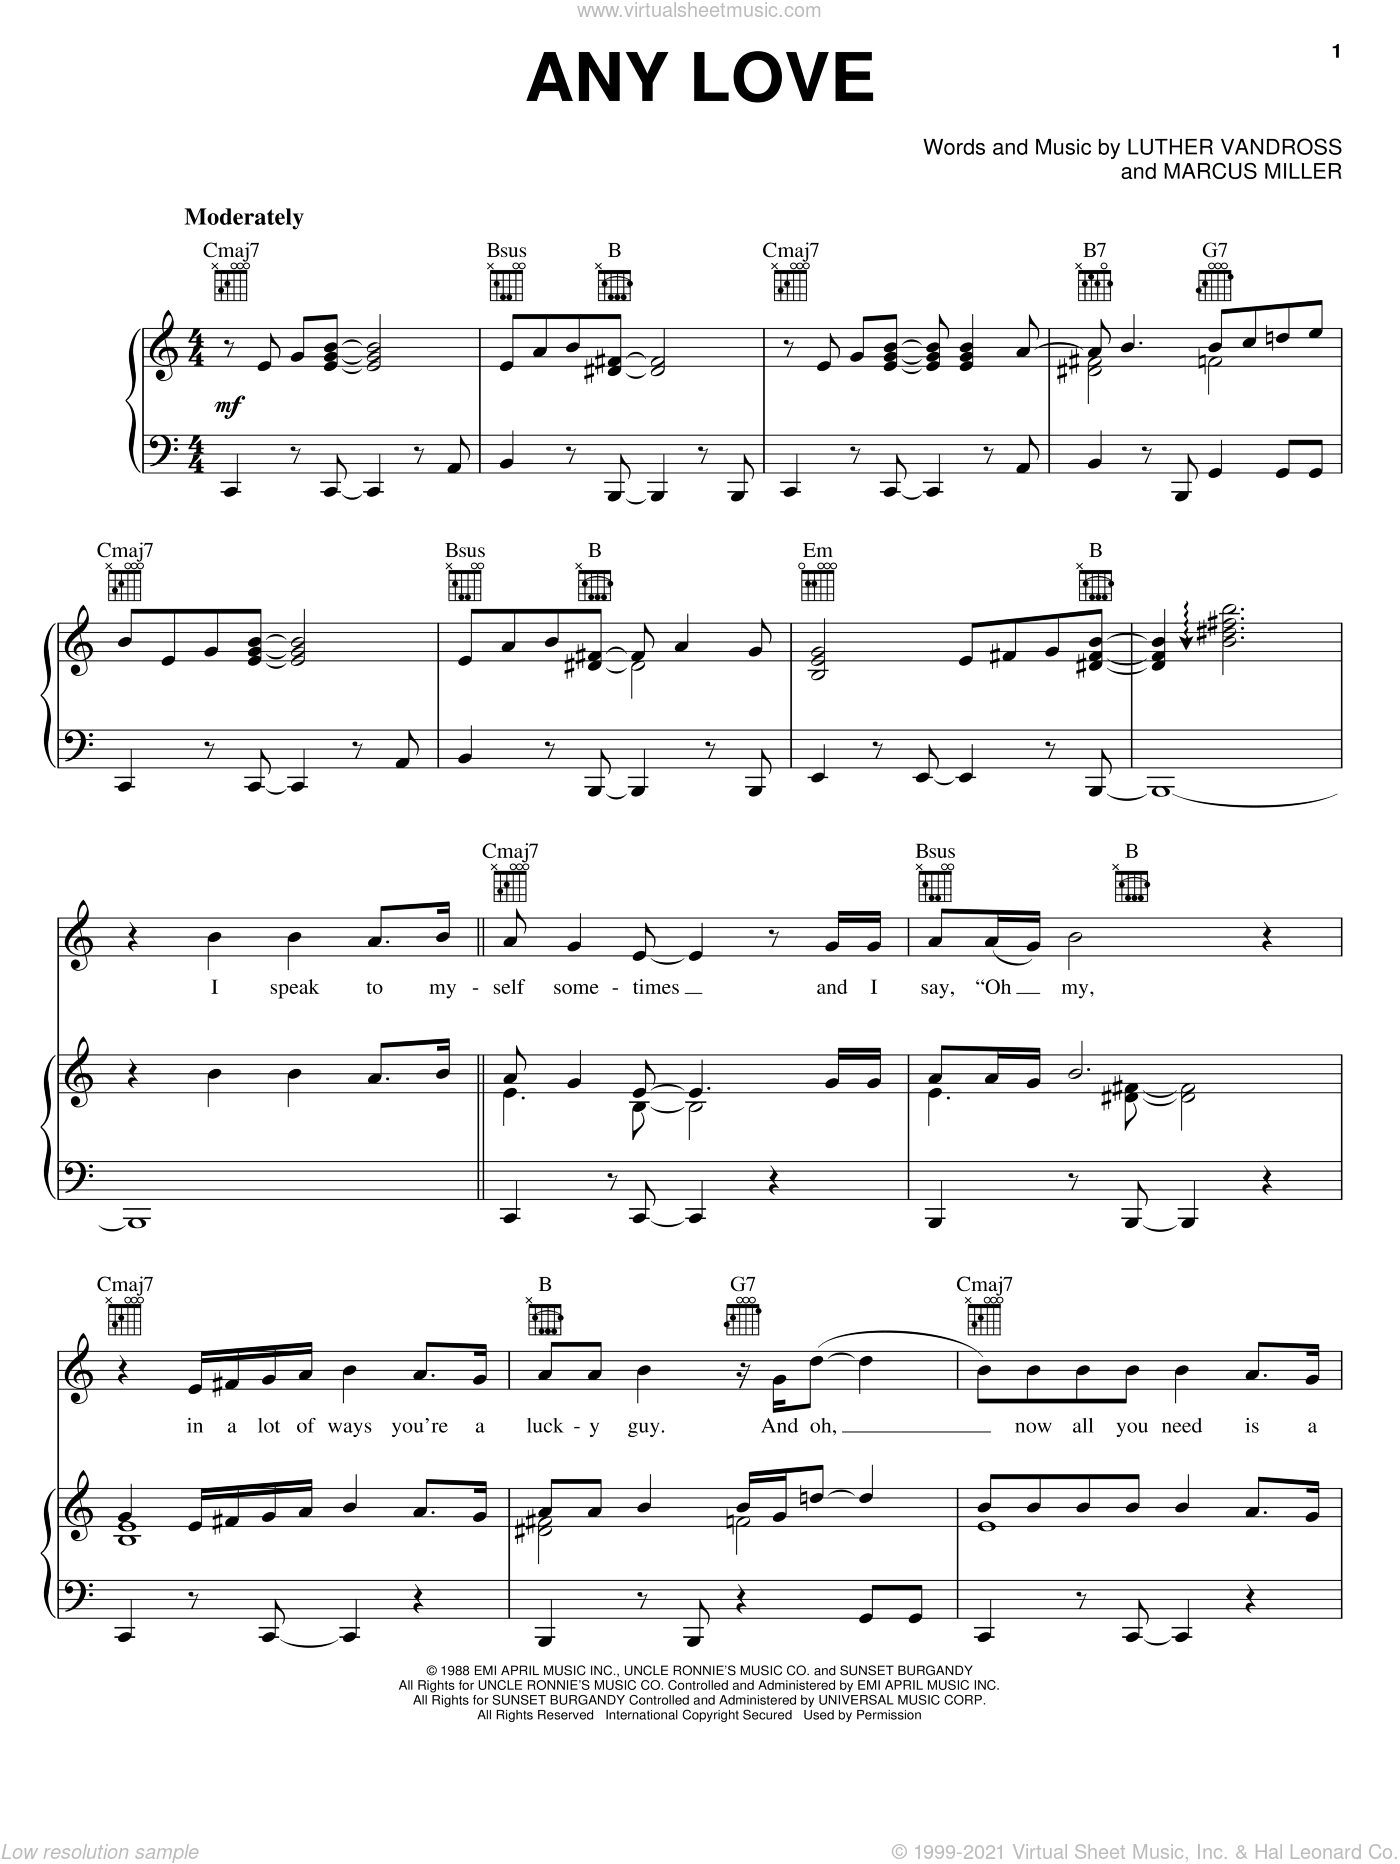 Any Love sheet music for voice, piano or guitar by Marcus Miller and Luther Vandross. Score Image Preview.